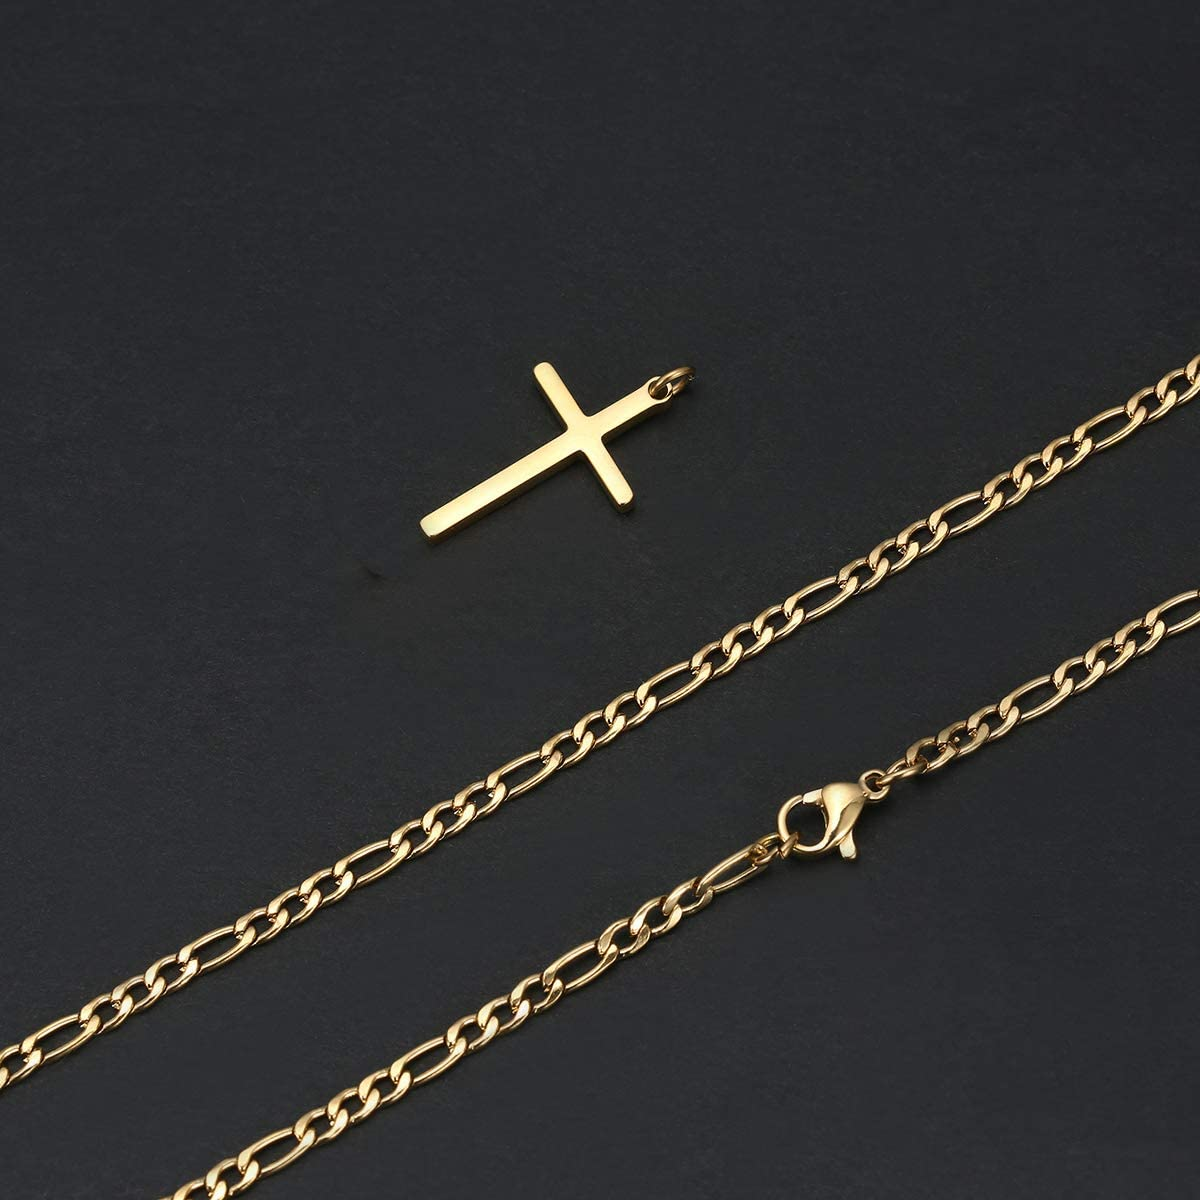 TASBERN Cross Necklace for Men 14K Gold Filled Stainless Steel Polished Plain Cross Pendant Necklace Simple Religious Jewelry Gift for Son Boy